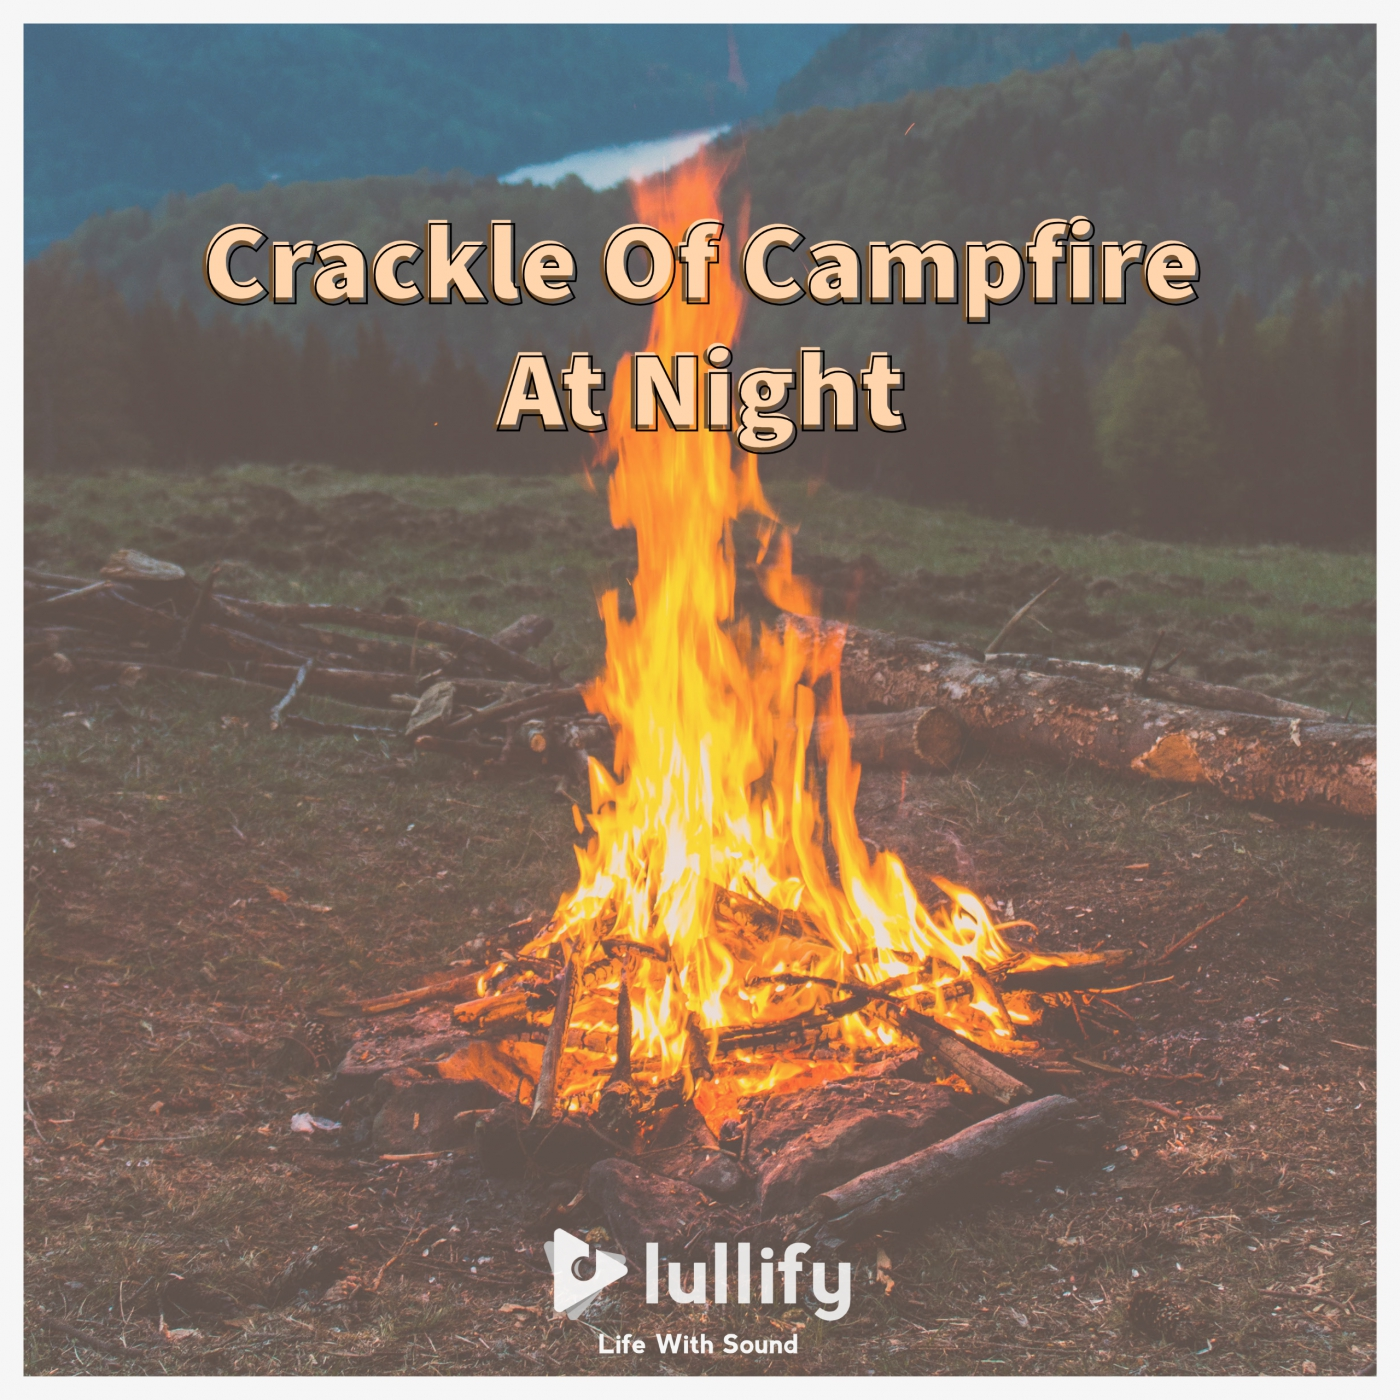 Crackle Of Campfire At Night